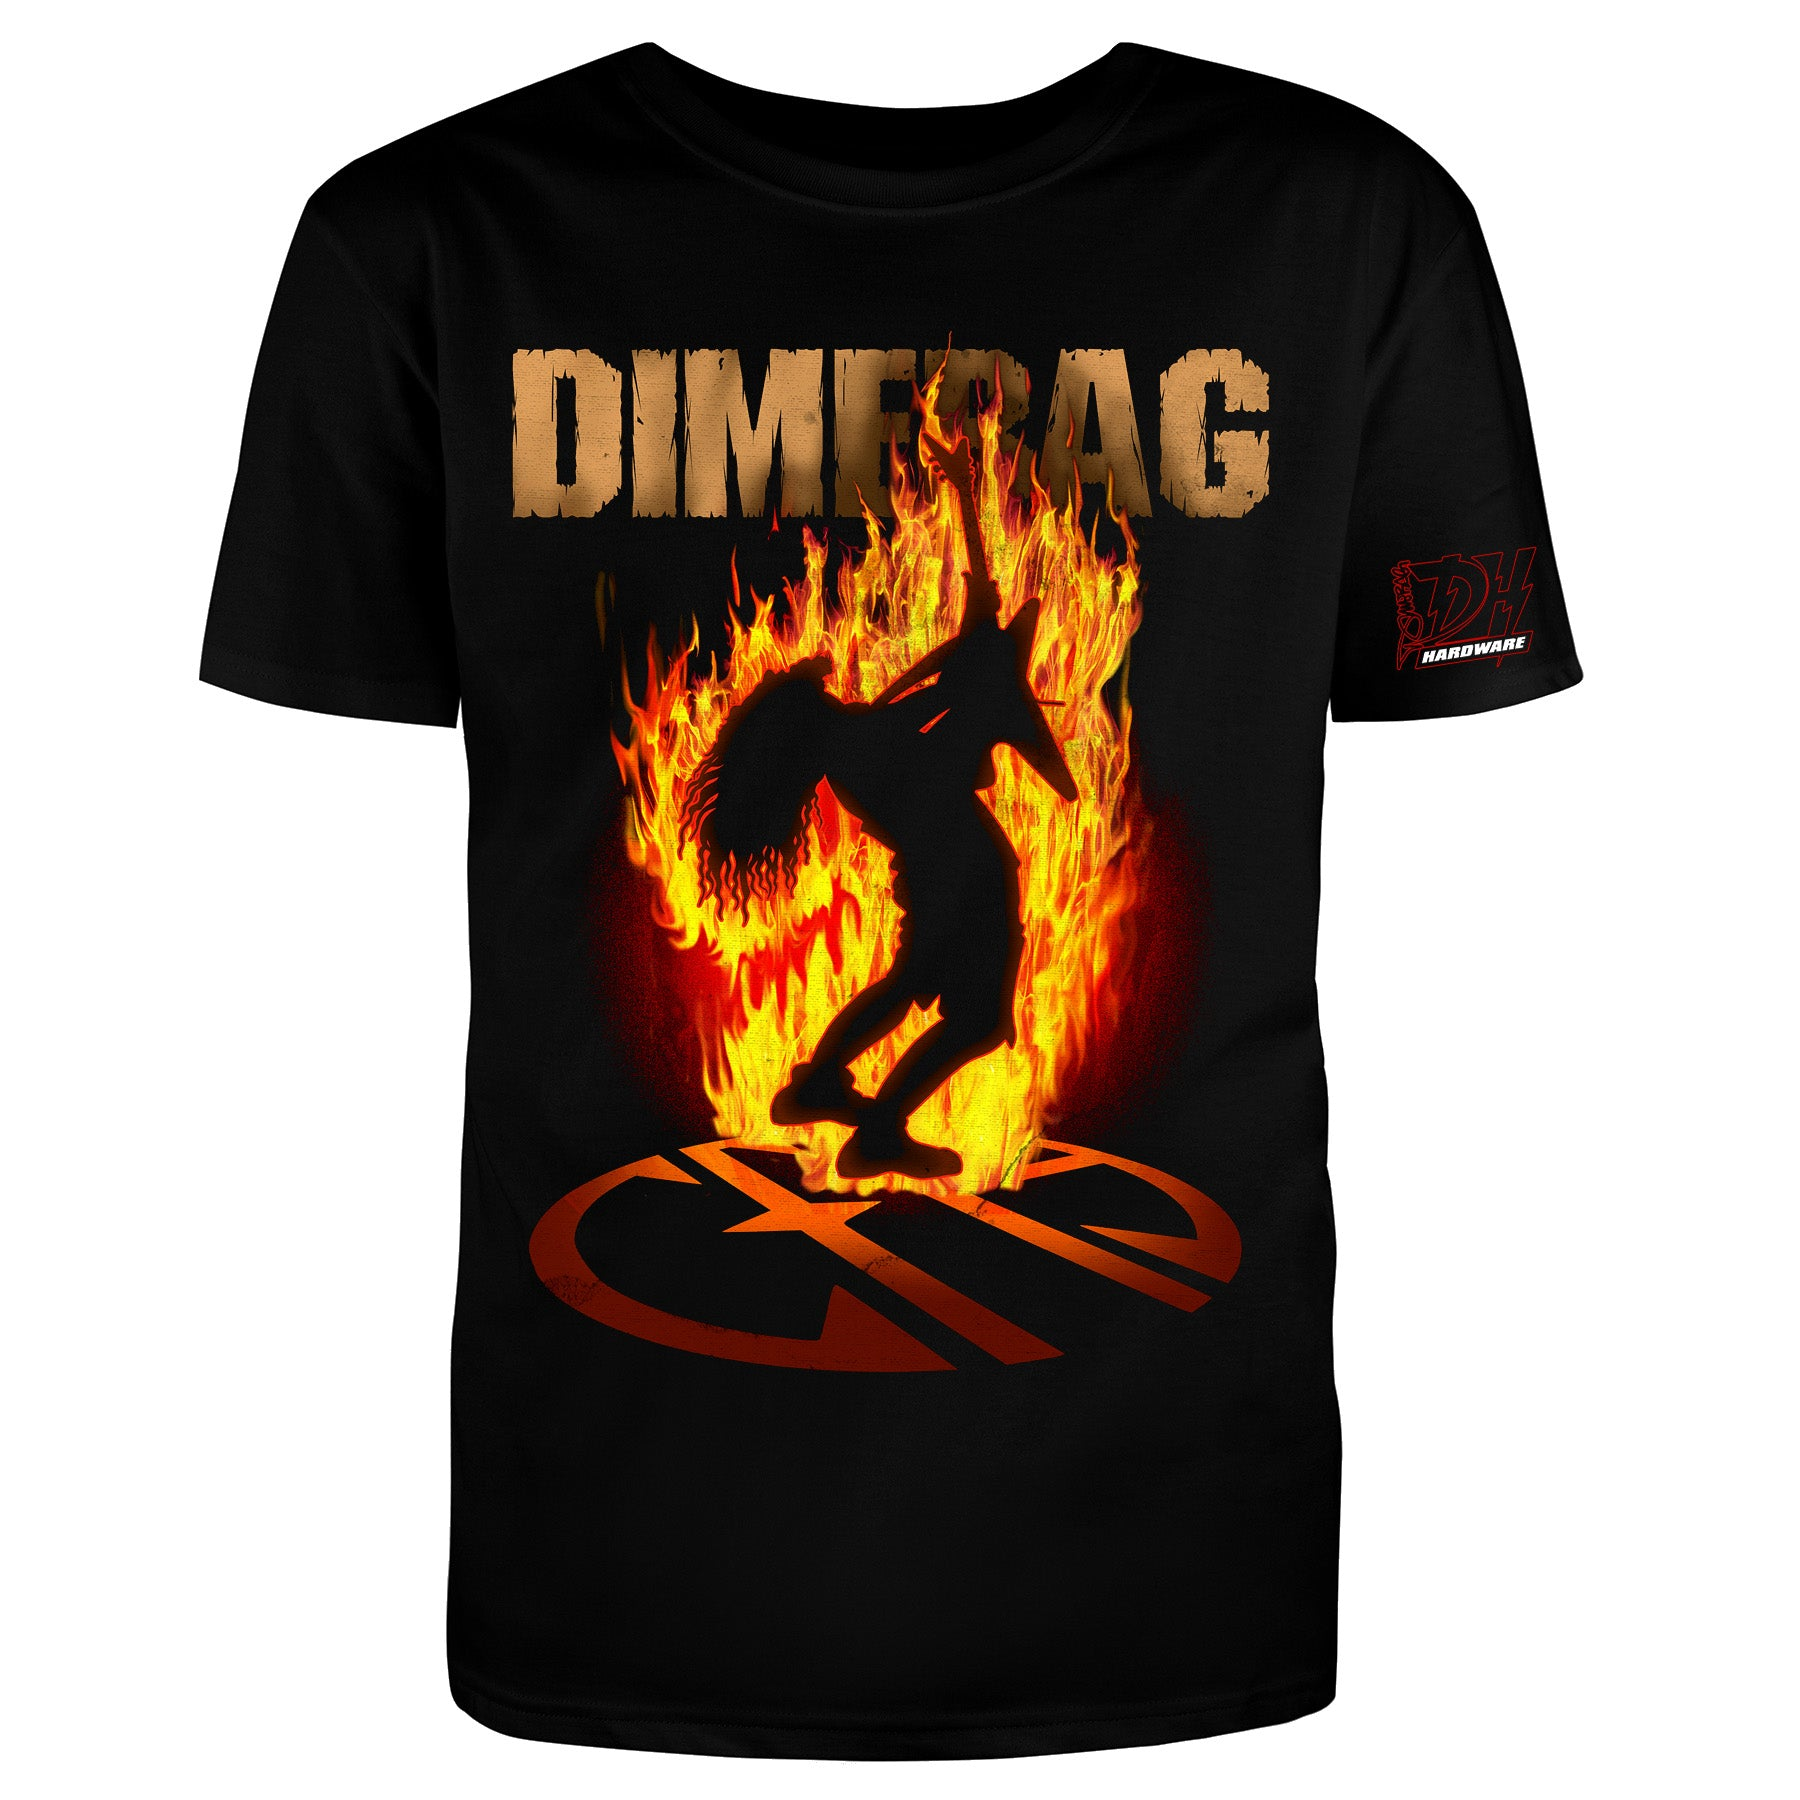 Dimebag Darrell - CFH Flames T shirt - Brand New Design